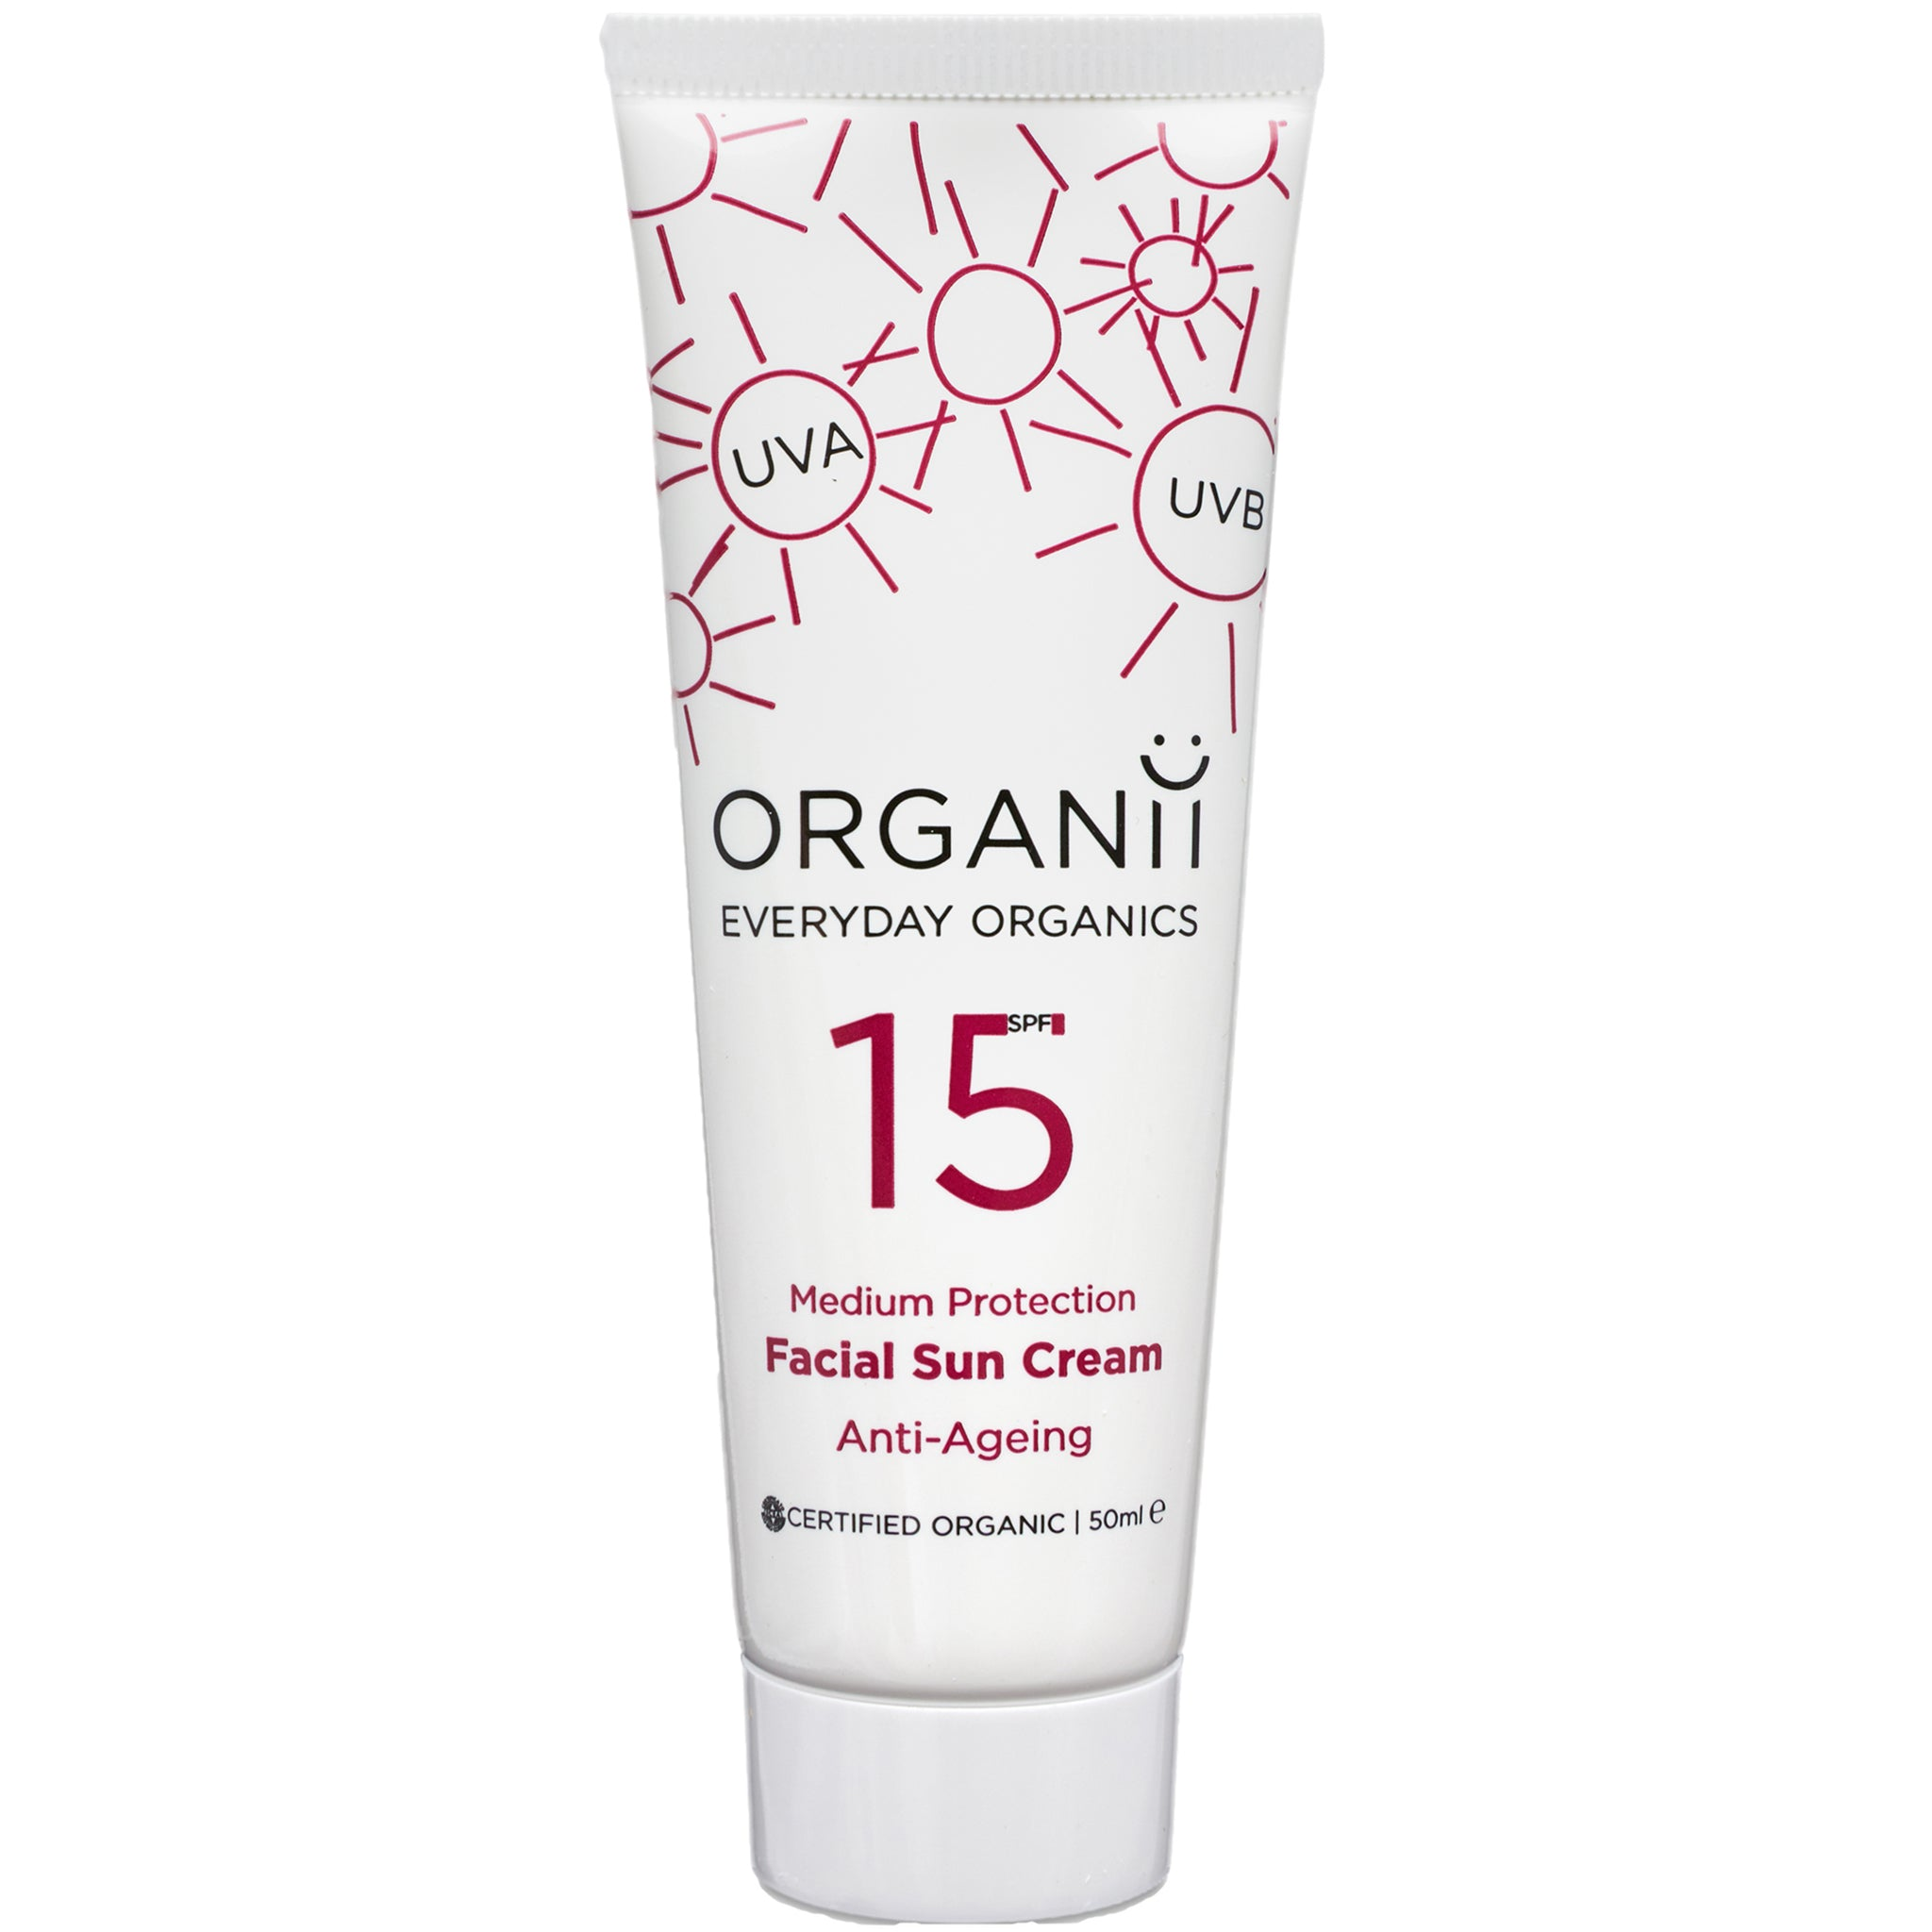 SPF15 Anti Ageing Facial Sun Cream